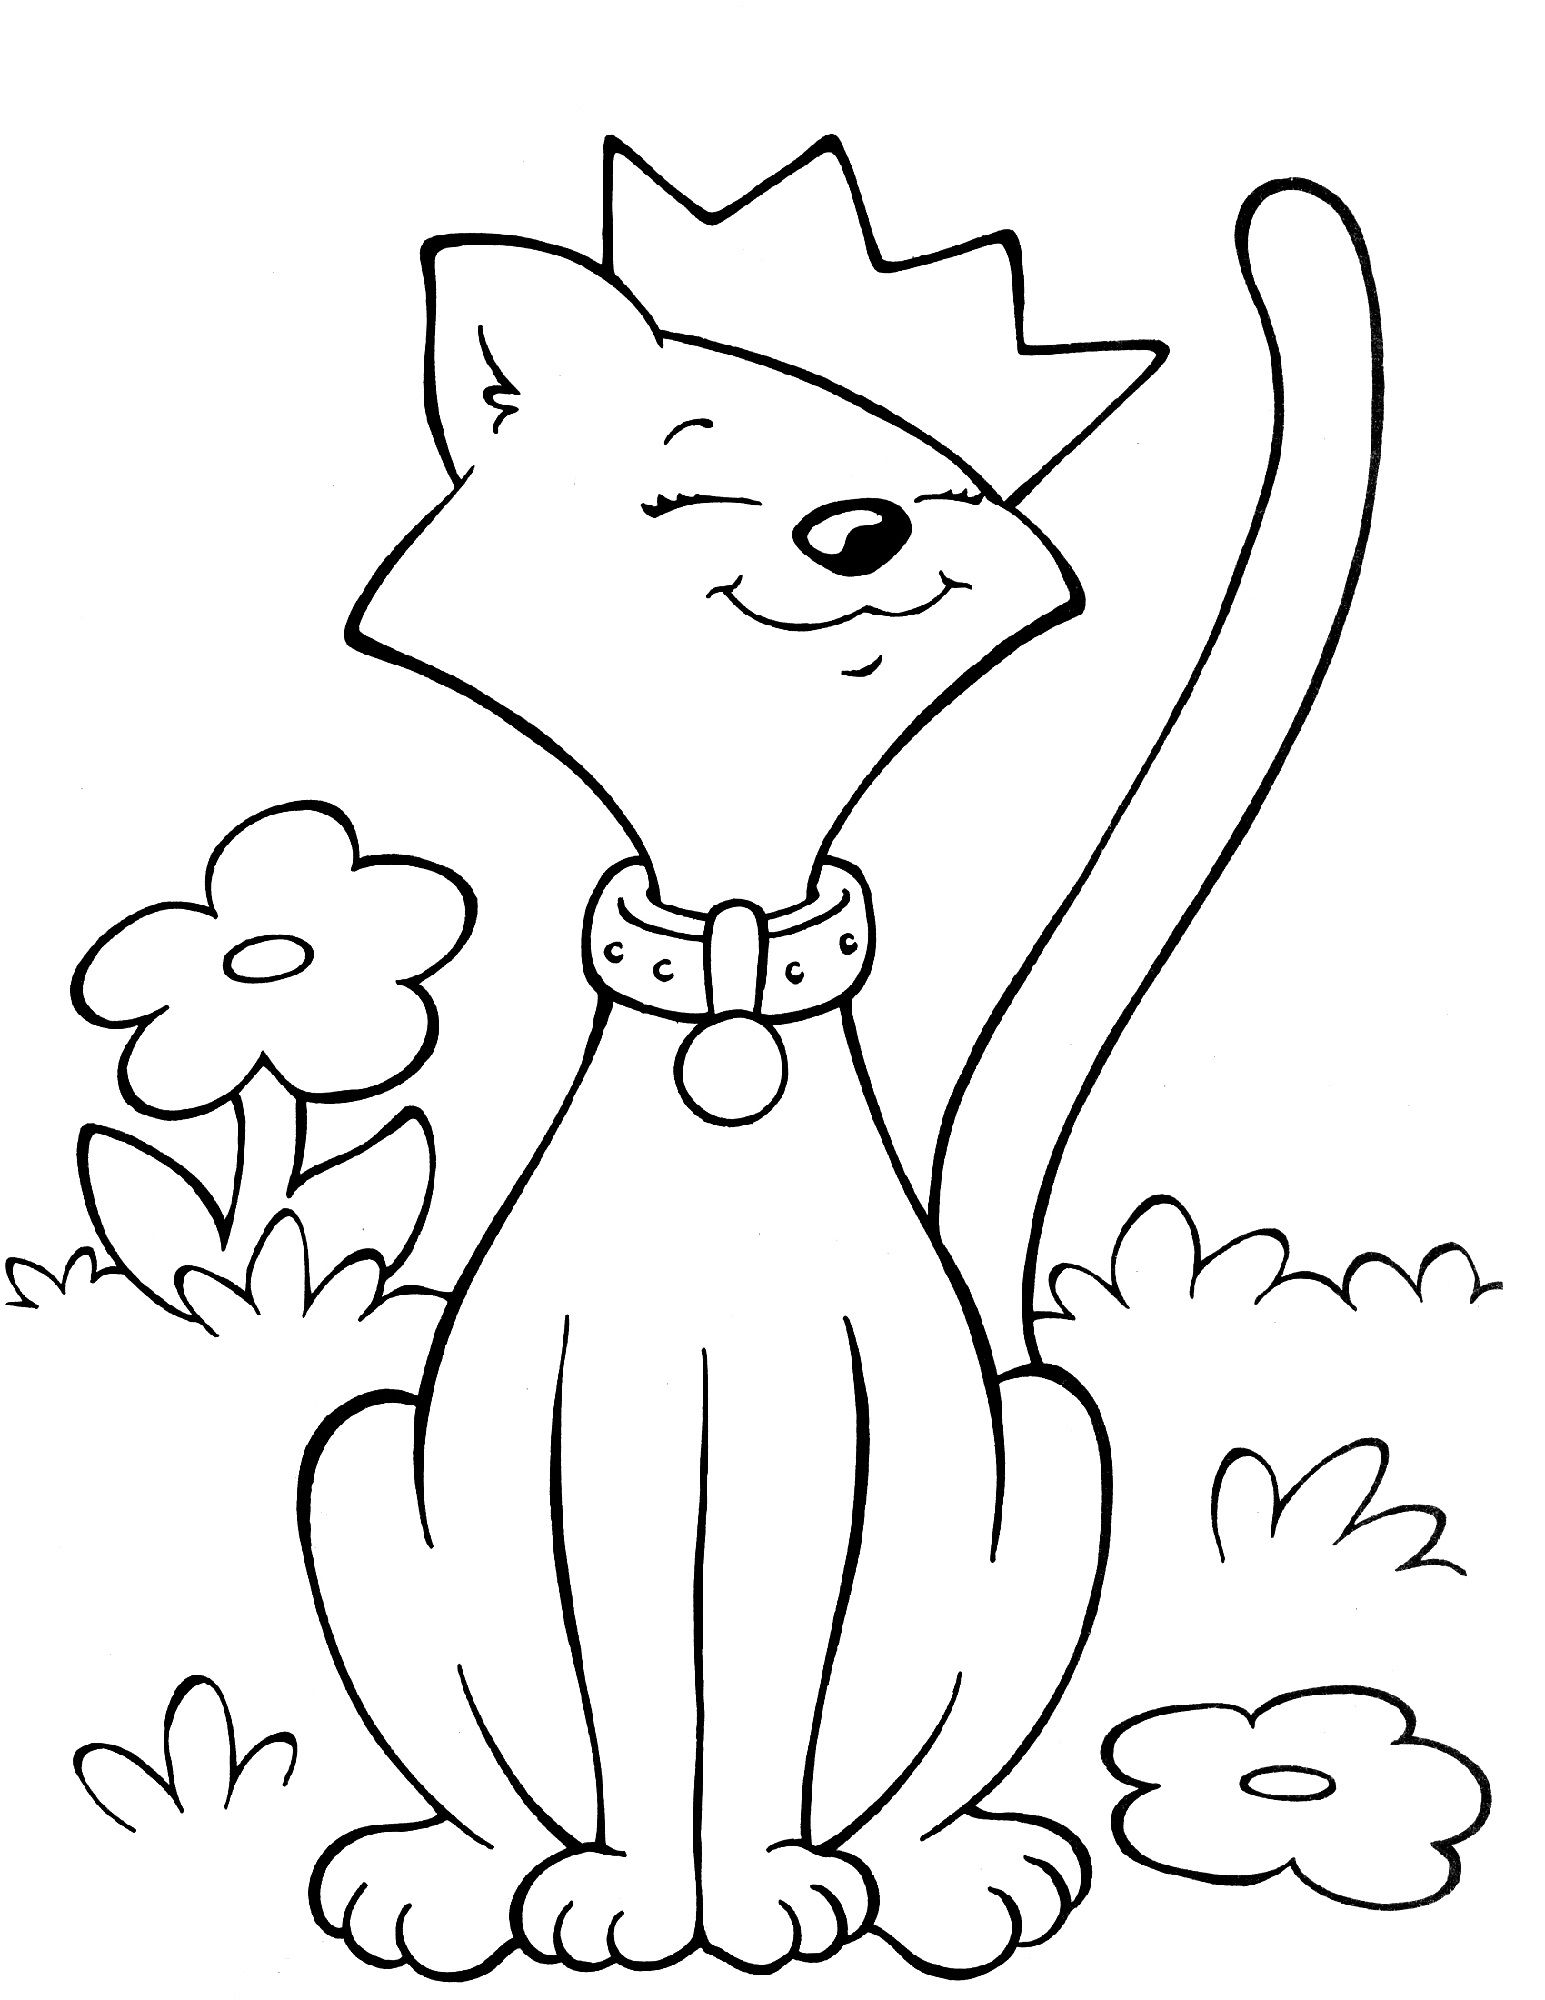 Cat Activities for Kids   Crayola coloring pages, Easy ...